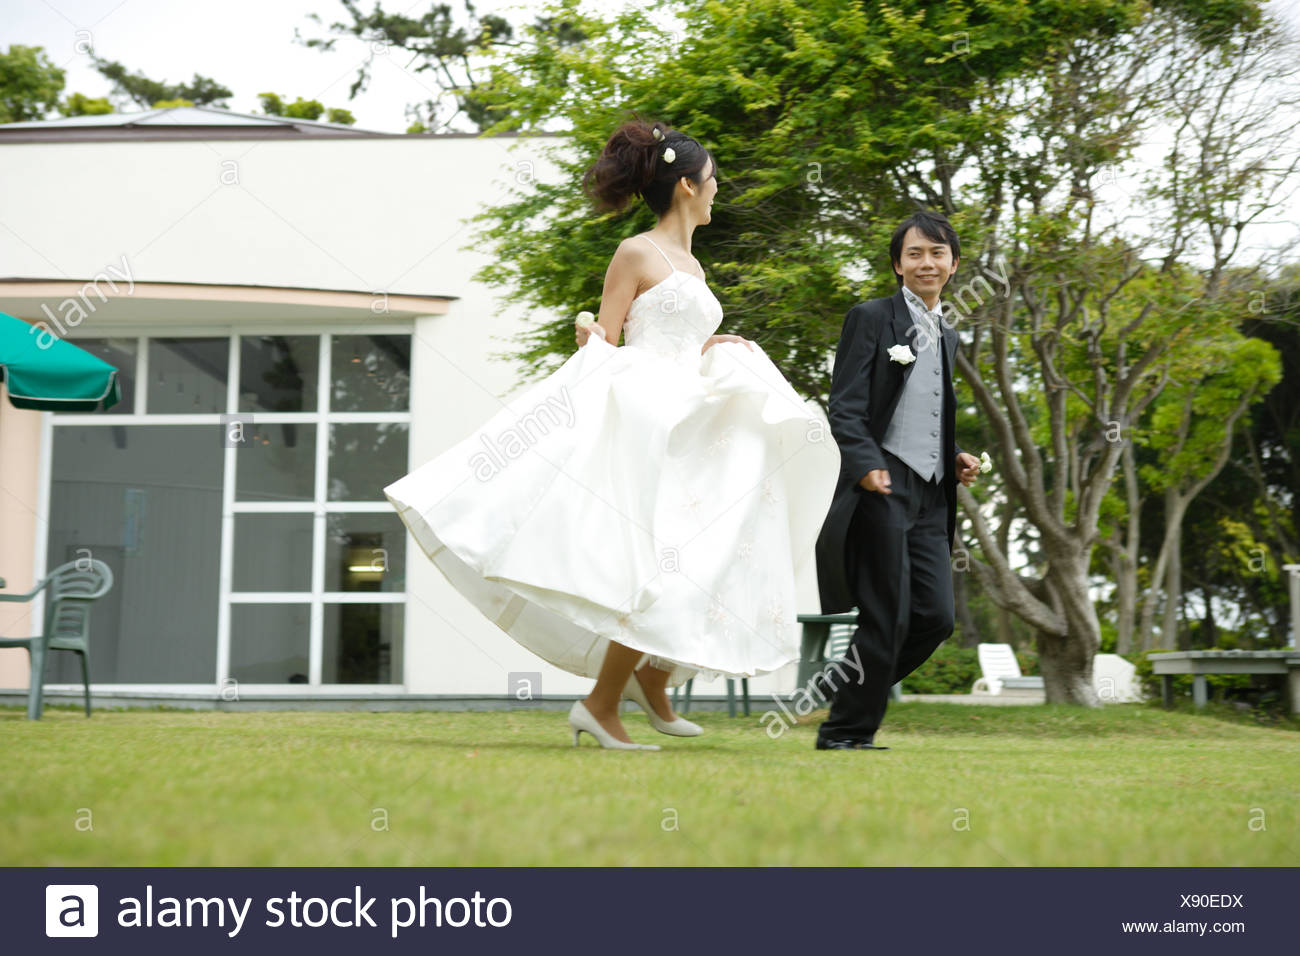 Fantastic Bride And Groom Running On Lawn Stock Photo 280909158 Alamy Download Free Architecture Designs Scobabritishbridgeorg